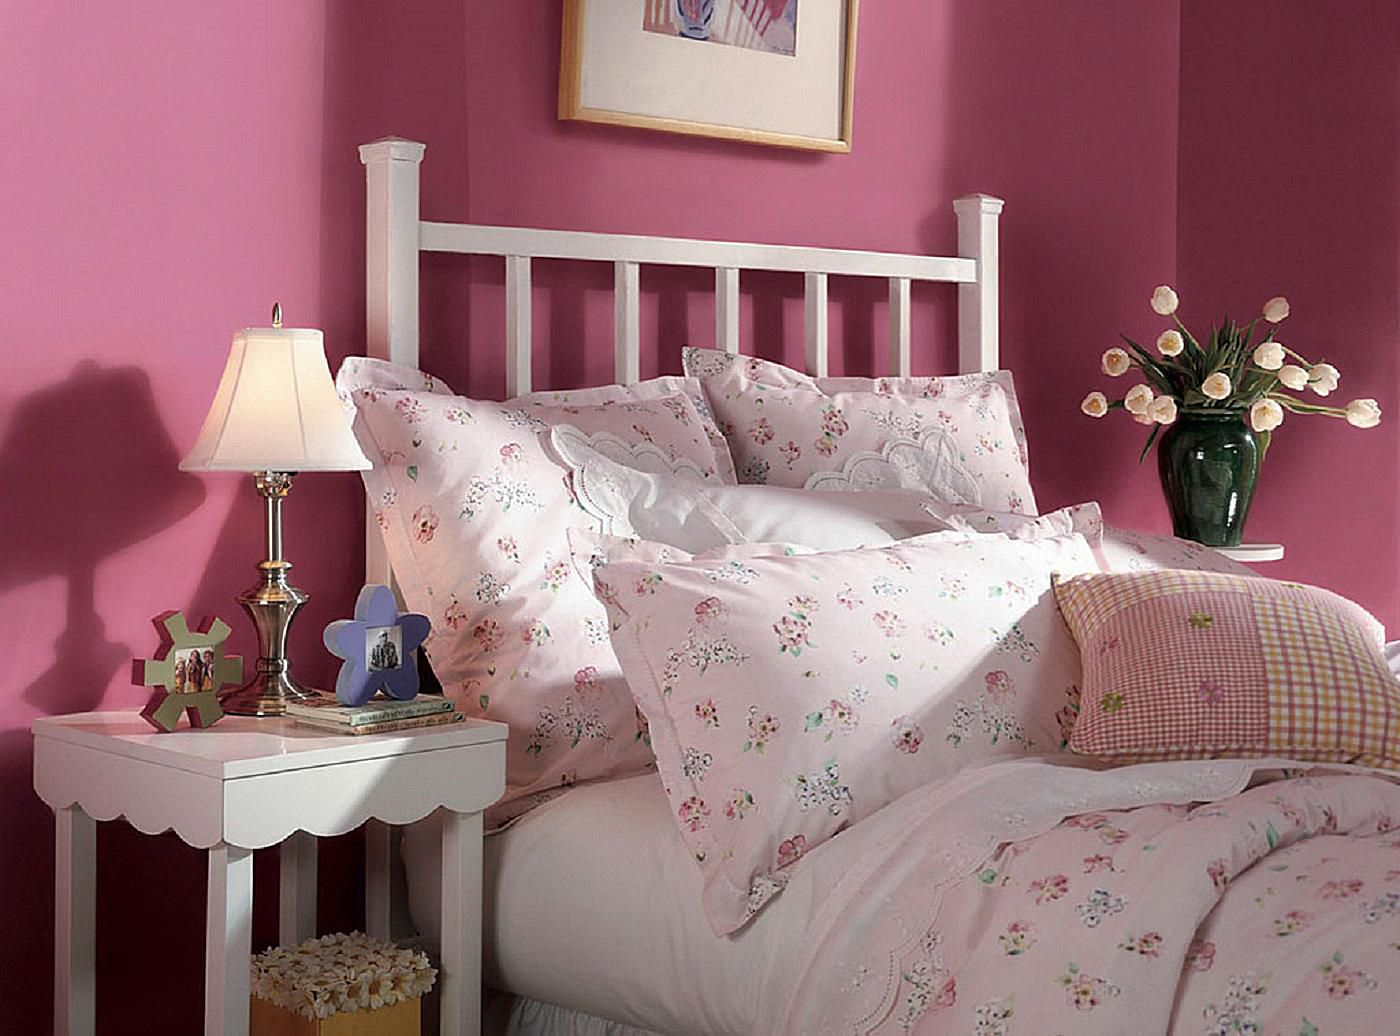 10 great pink and purple paint colors for the bedroom 19487 | dutch boy wild strawberry 58a6c6193df78c345b3a102e